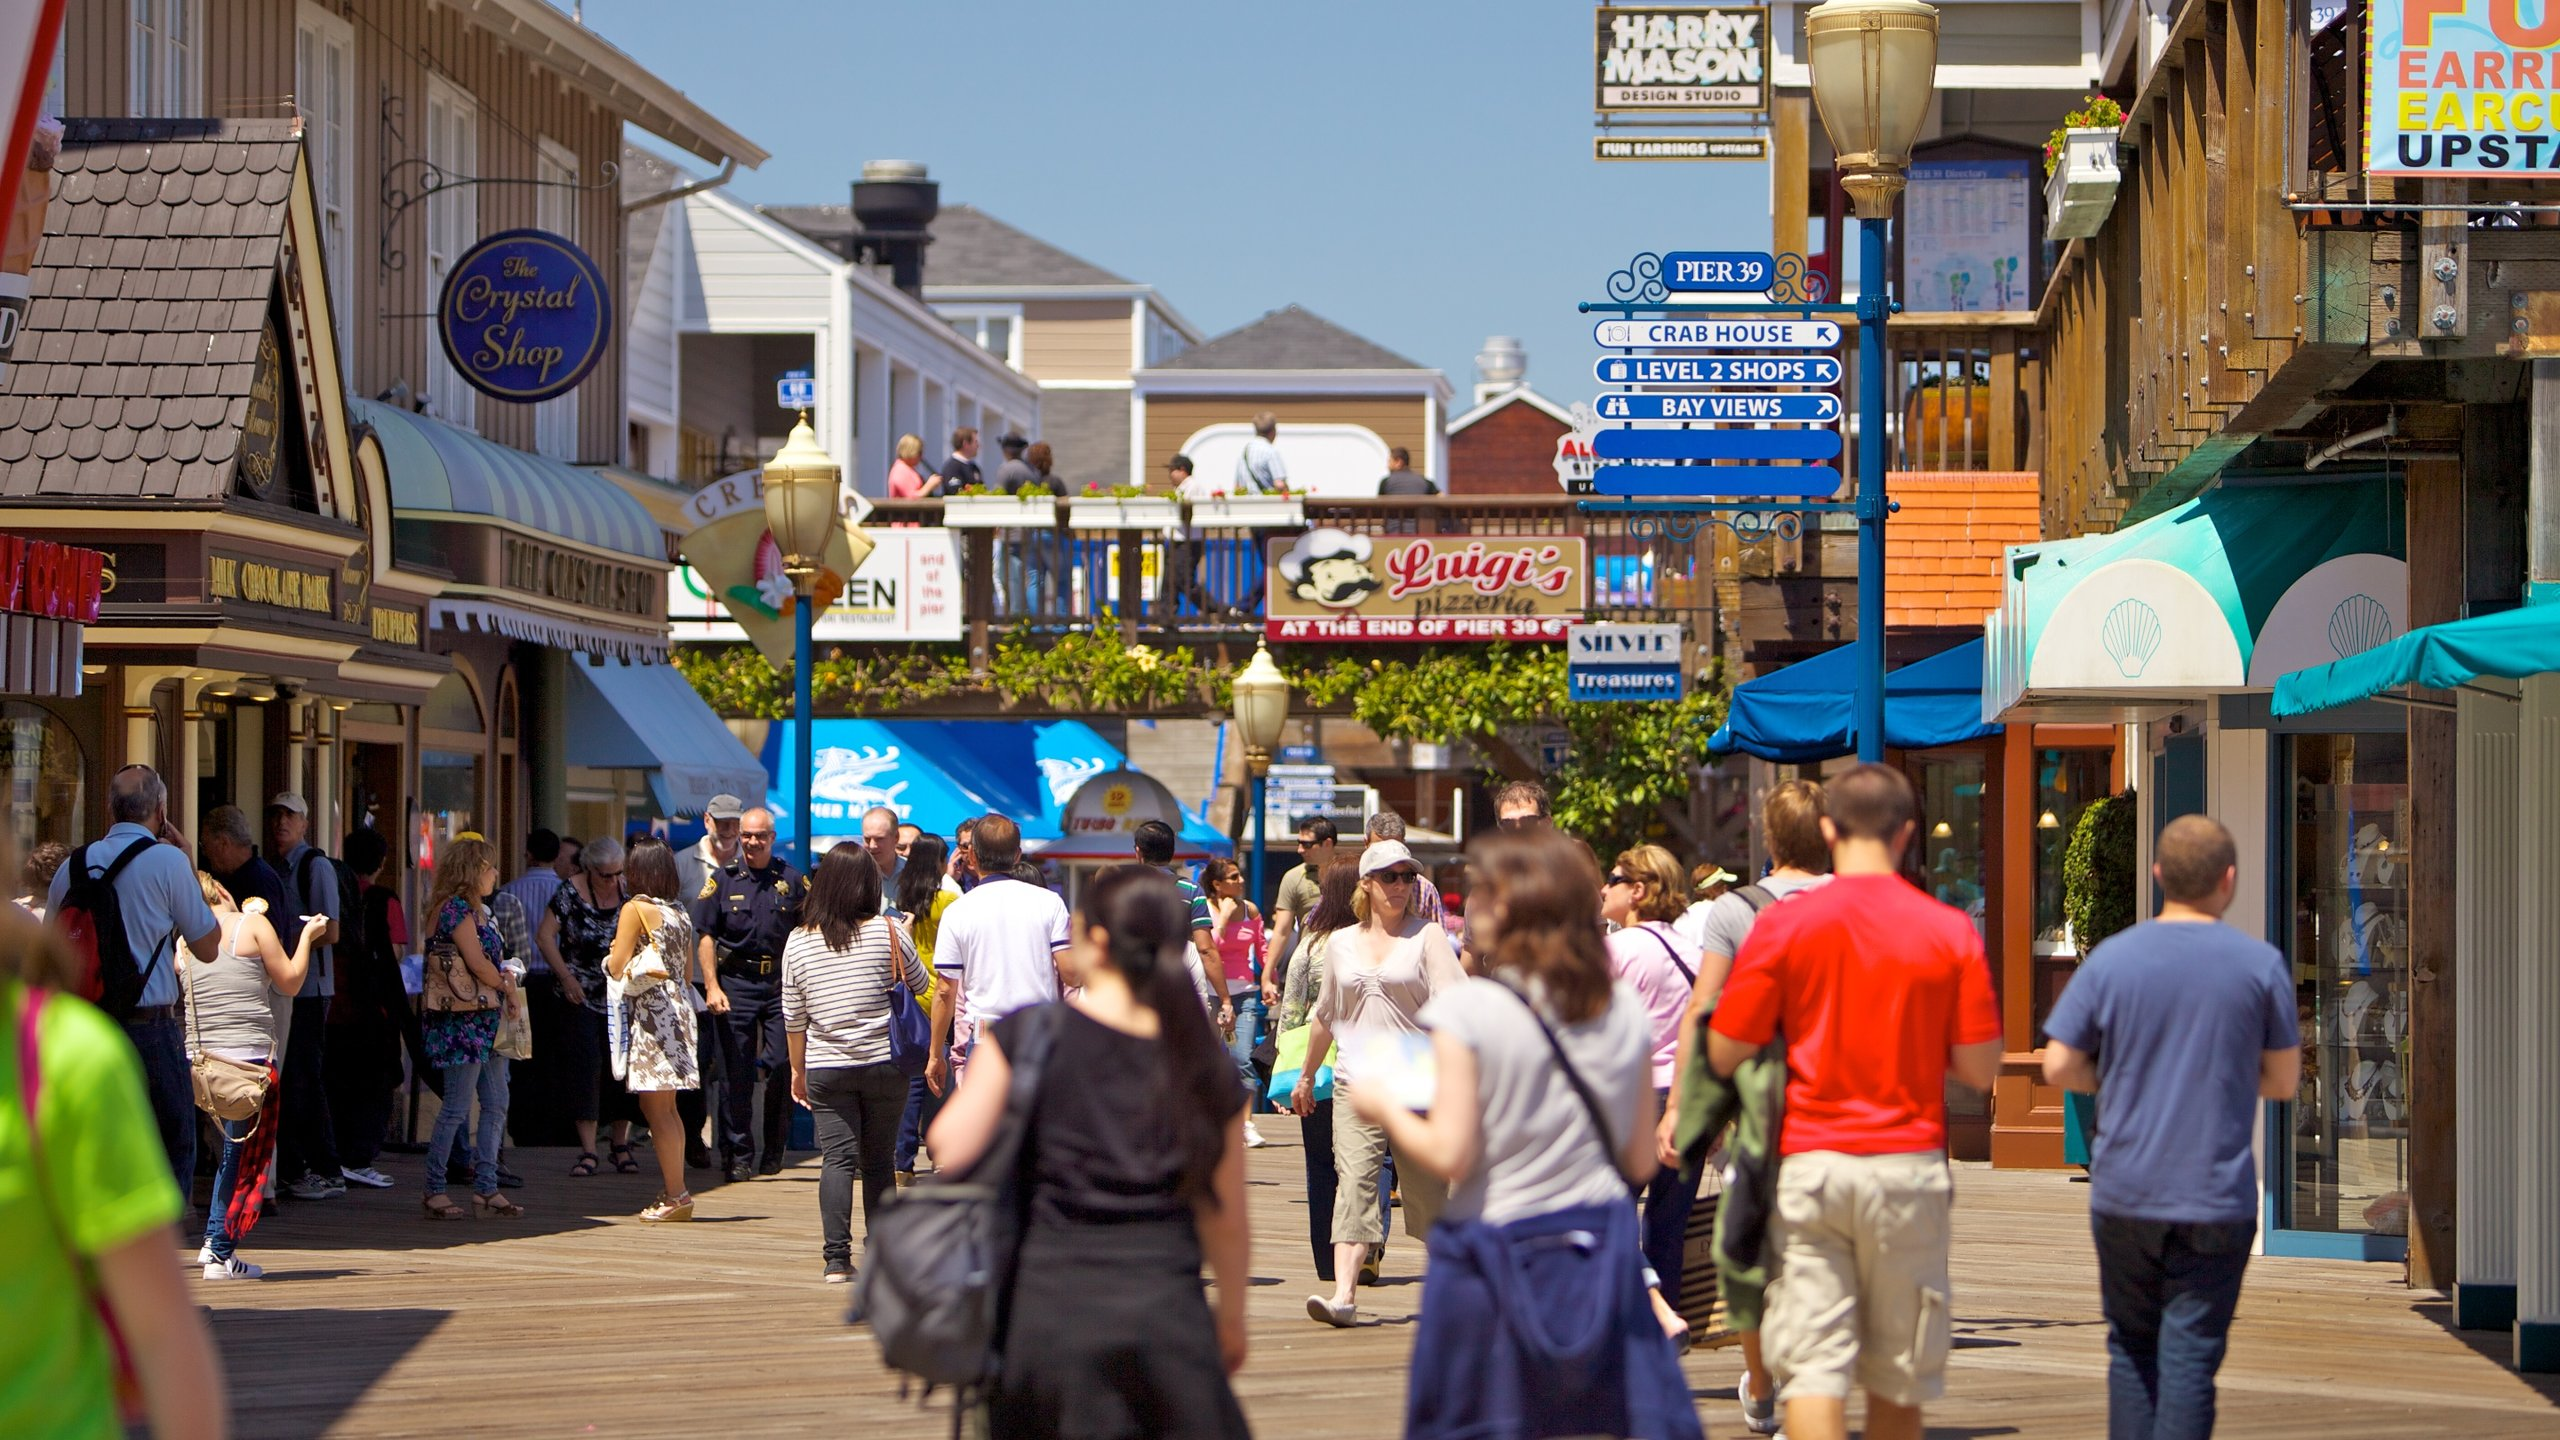 Pier 39, San Francisco, California, United States of America